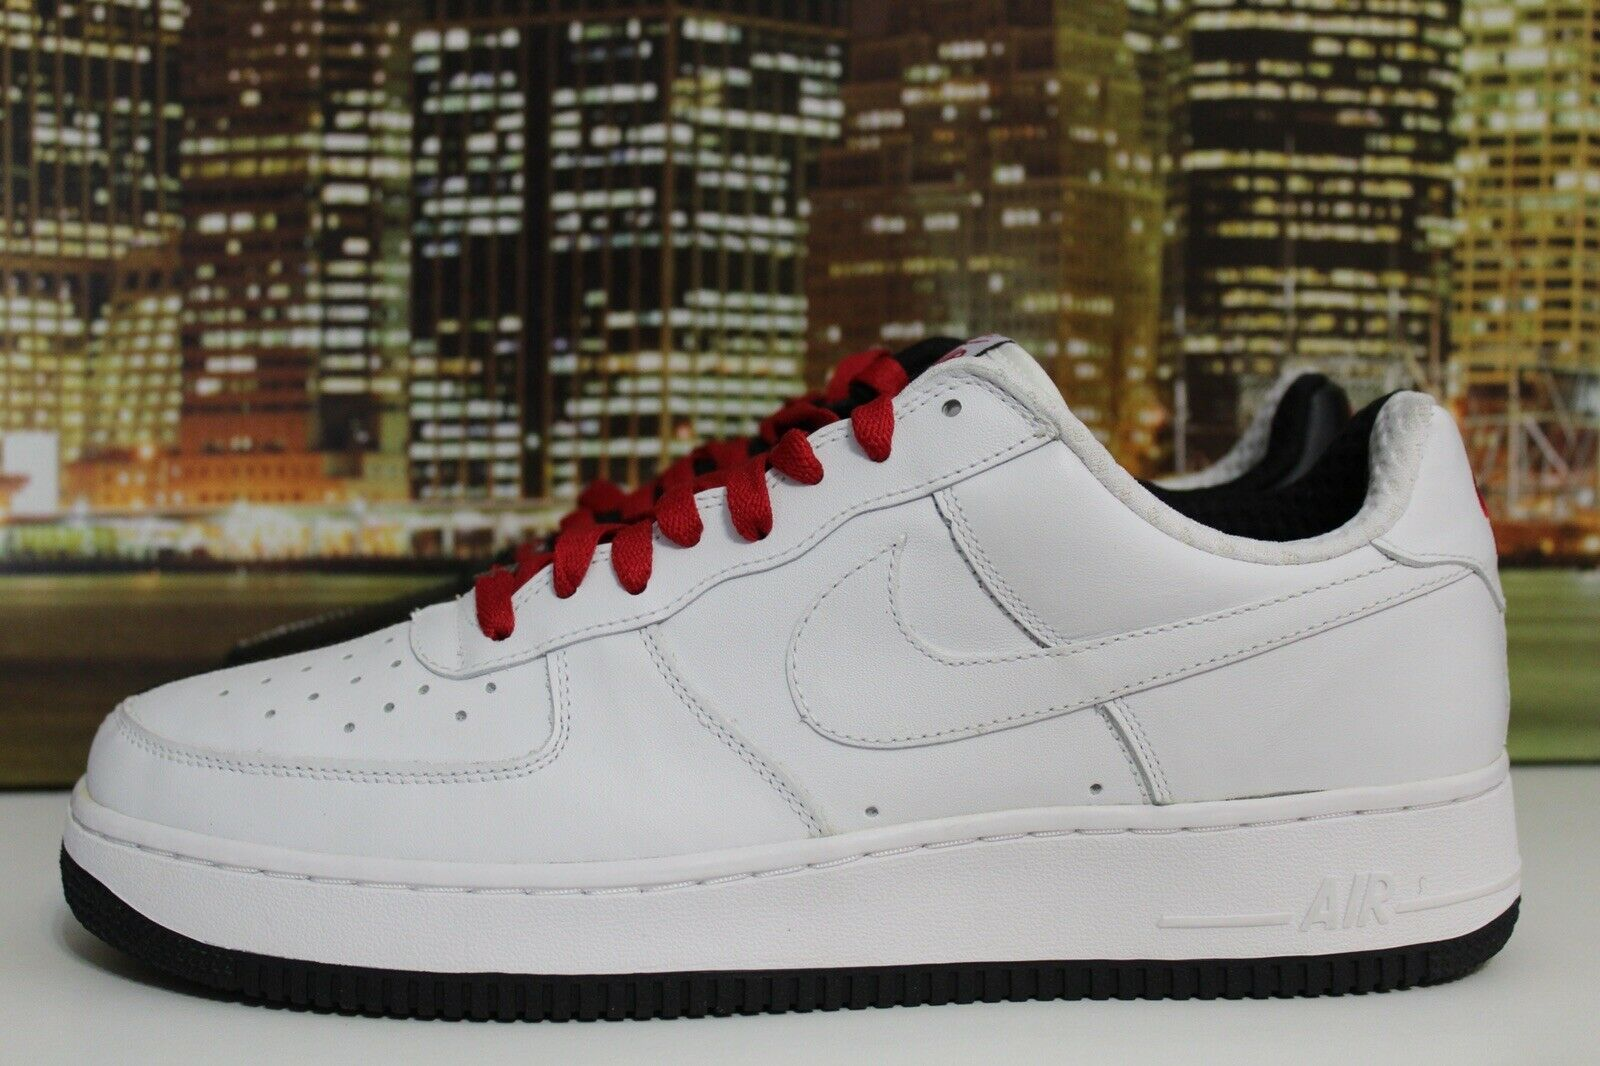 Nike Air Force 1 Premium Scarface White Black Varsity Red 2005 Sneakers Size 11